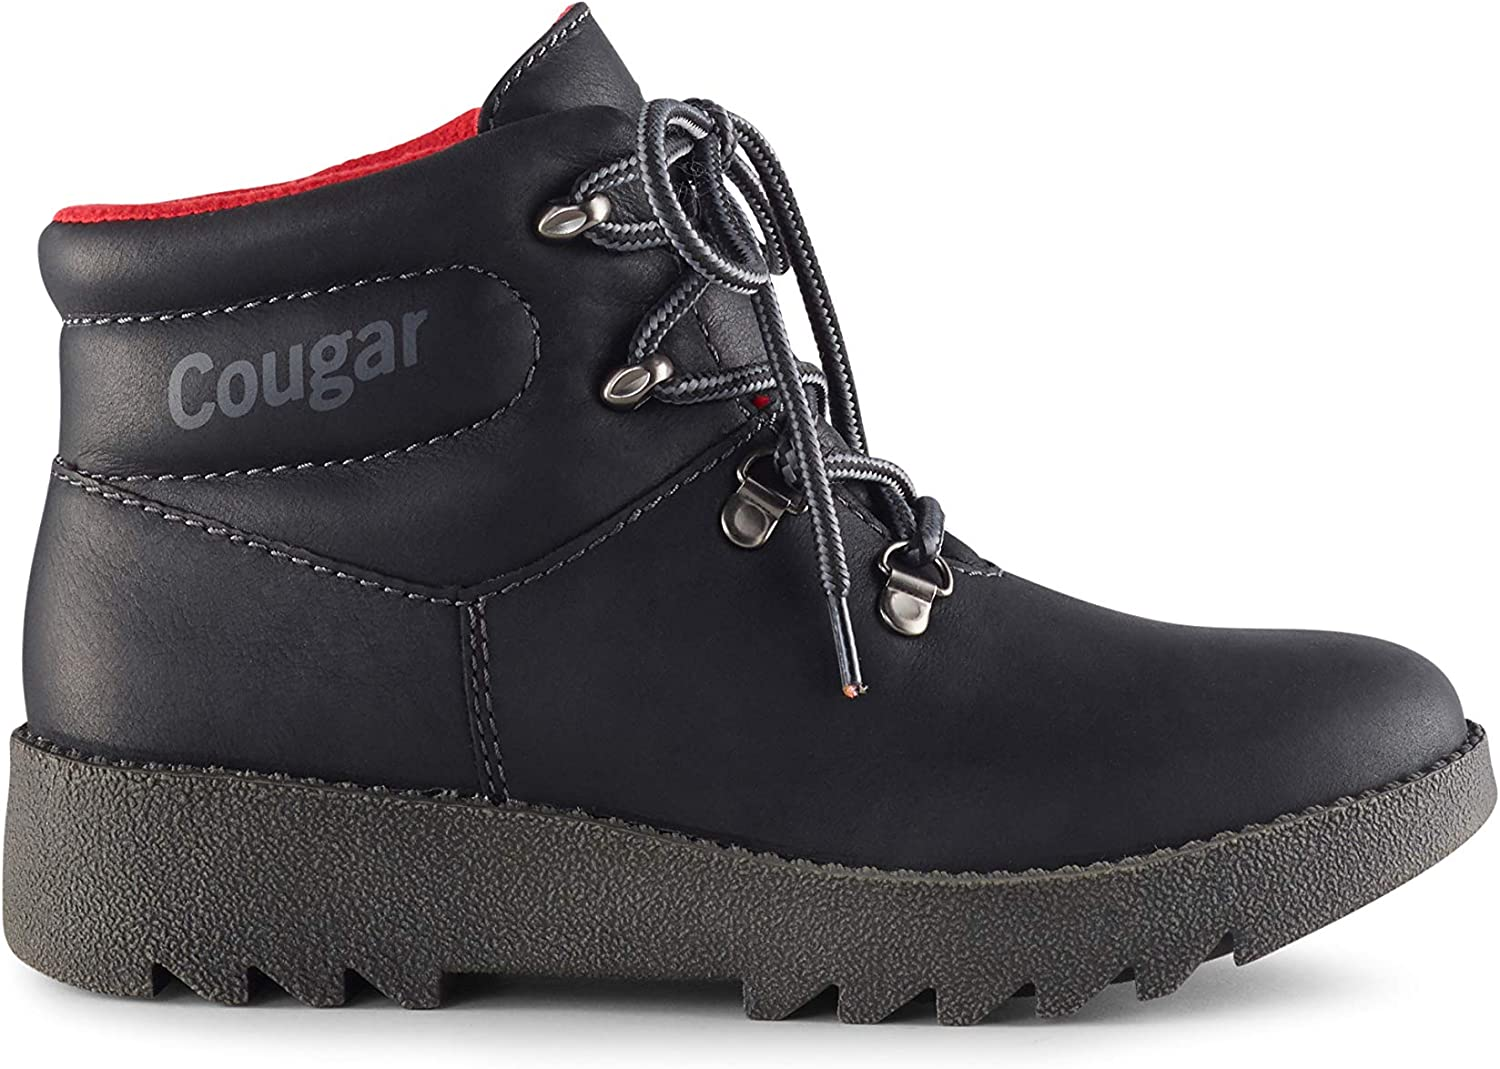 COUGAR Women's Paige Winter Boots in Amber